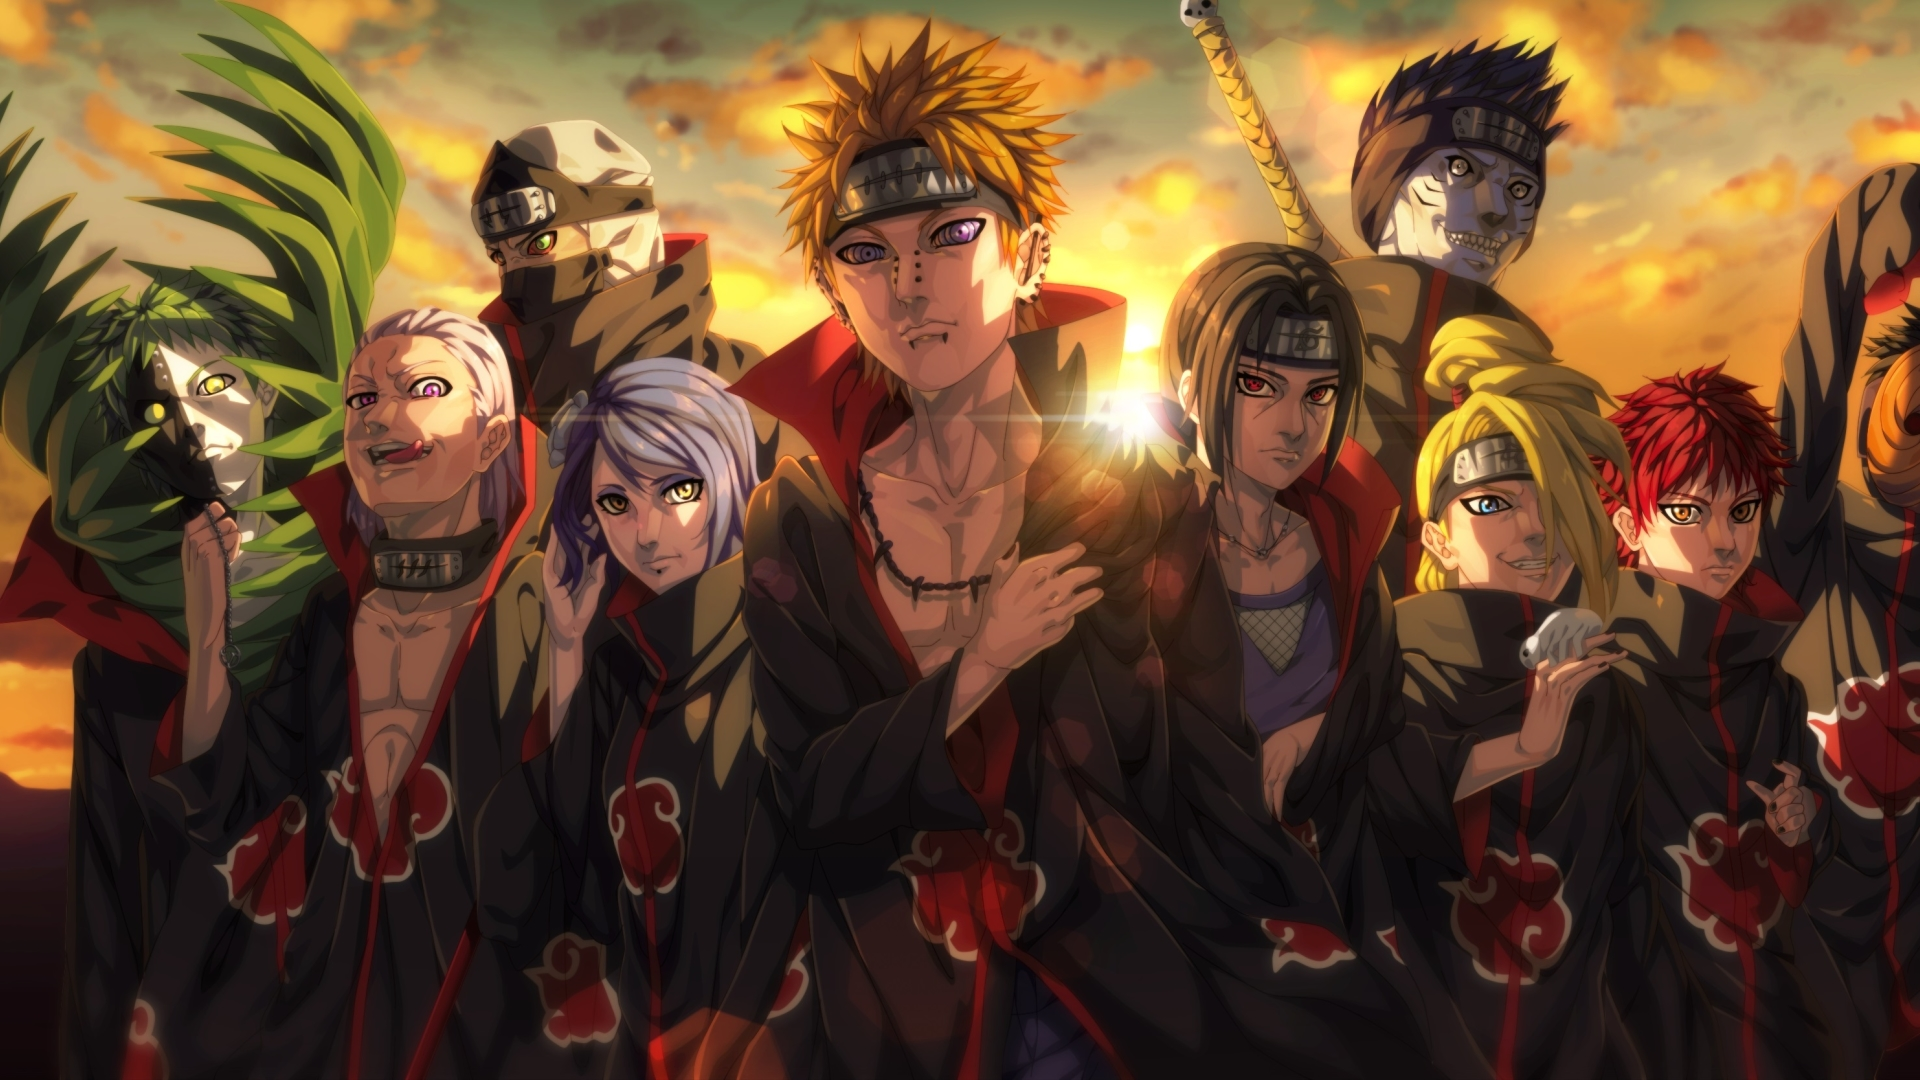 1920x1080 Akatsuki Organization Anime 1080p Laptop Full Hd